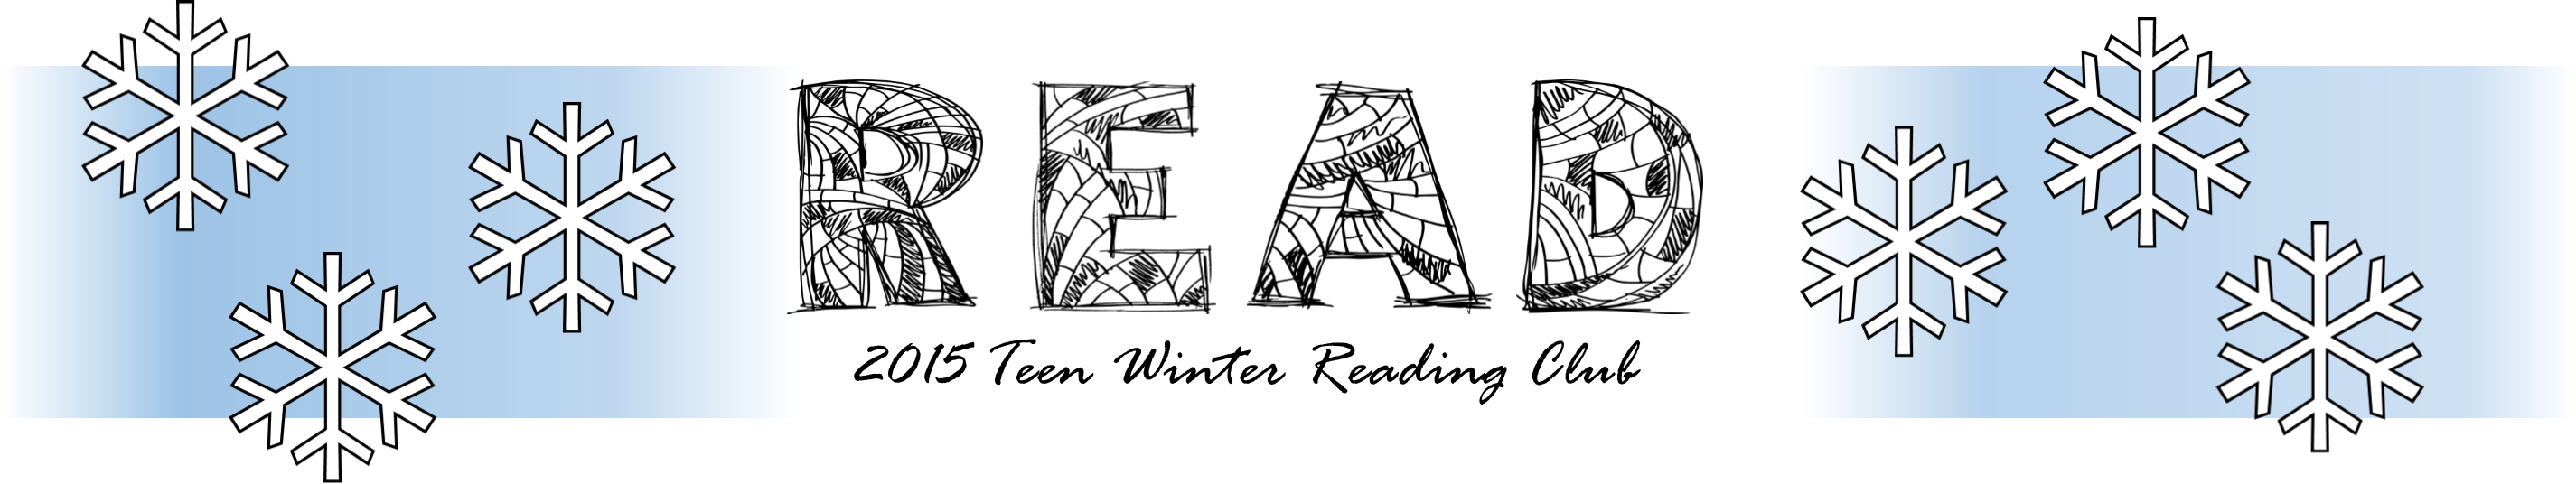 teen winter reading club now through march 26 2015